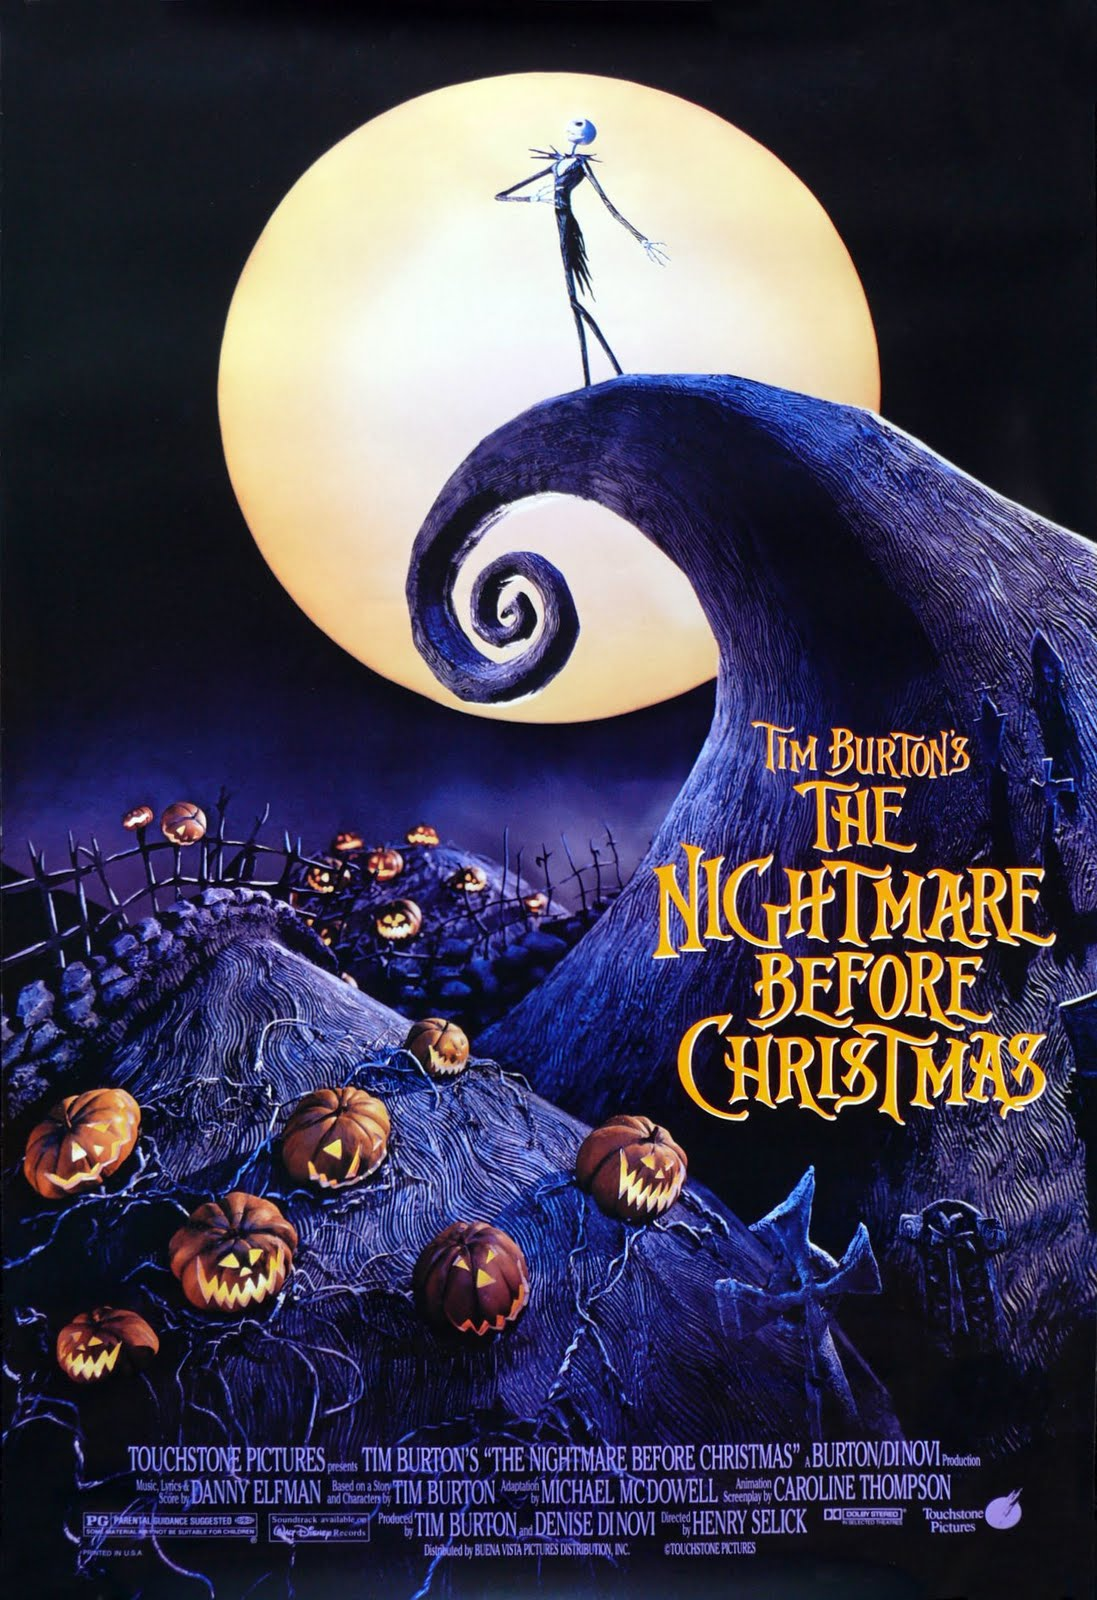 ... : An IMDb Movie Blog: Day Forty-One: The Nightmare Before Christmas